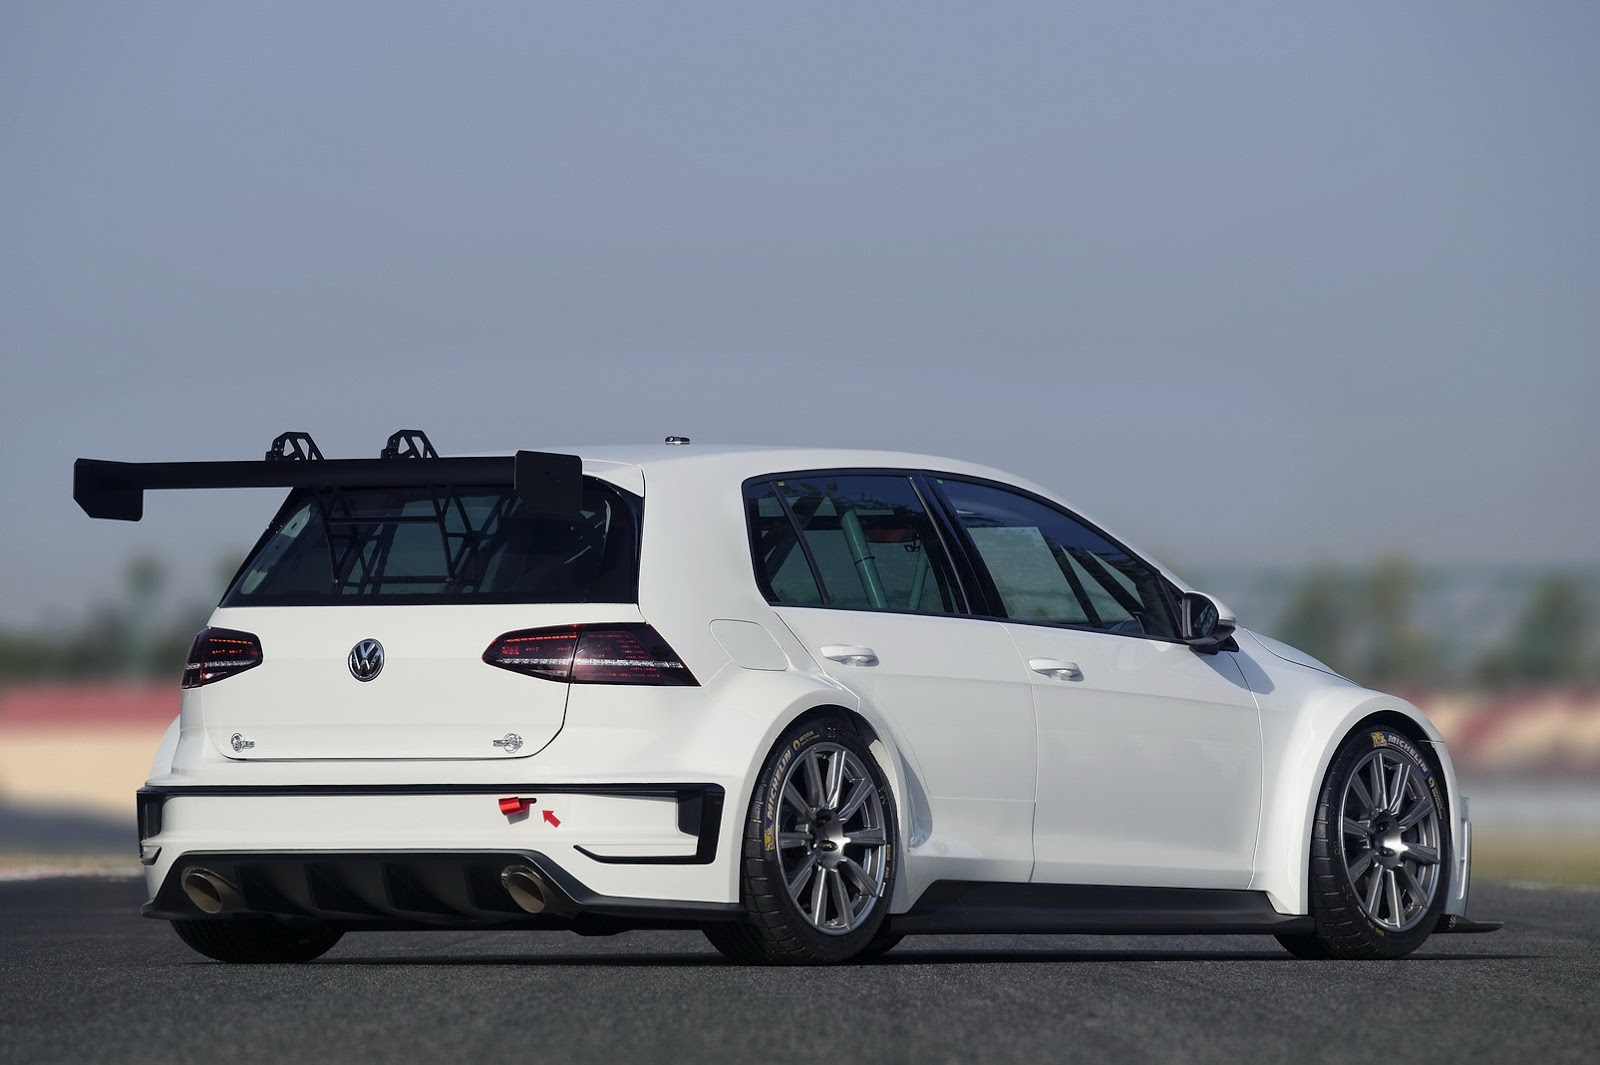 steroidal vw golf tcr racer officially joins the gti. Black Bedroom Furniture Sets. Home Design Ideas